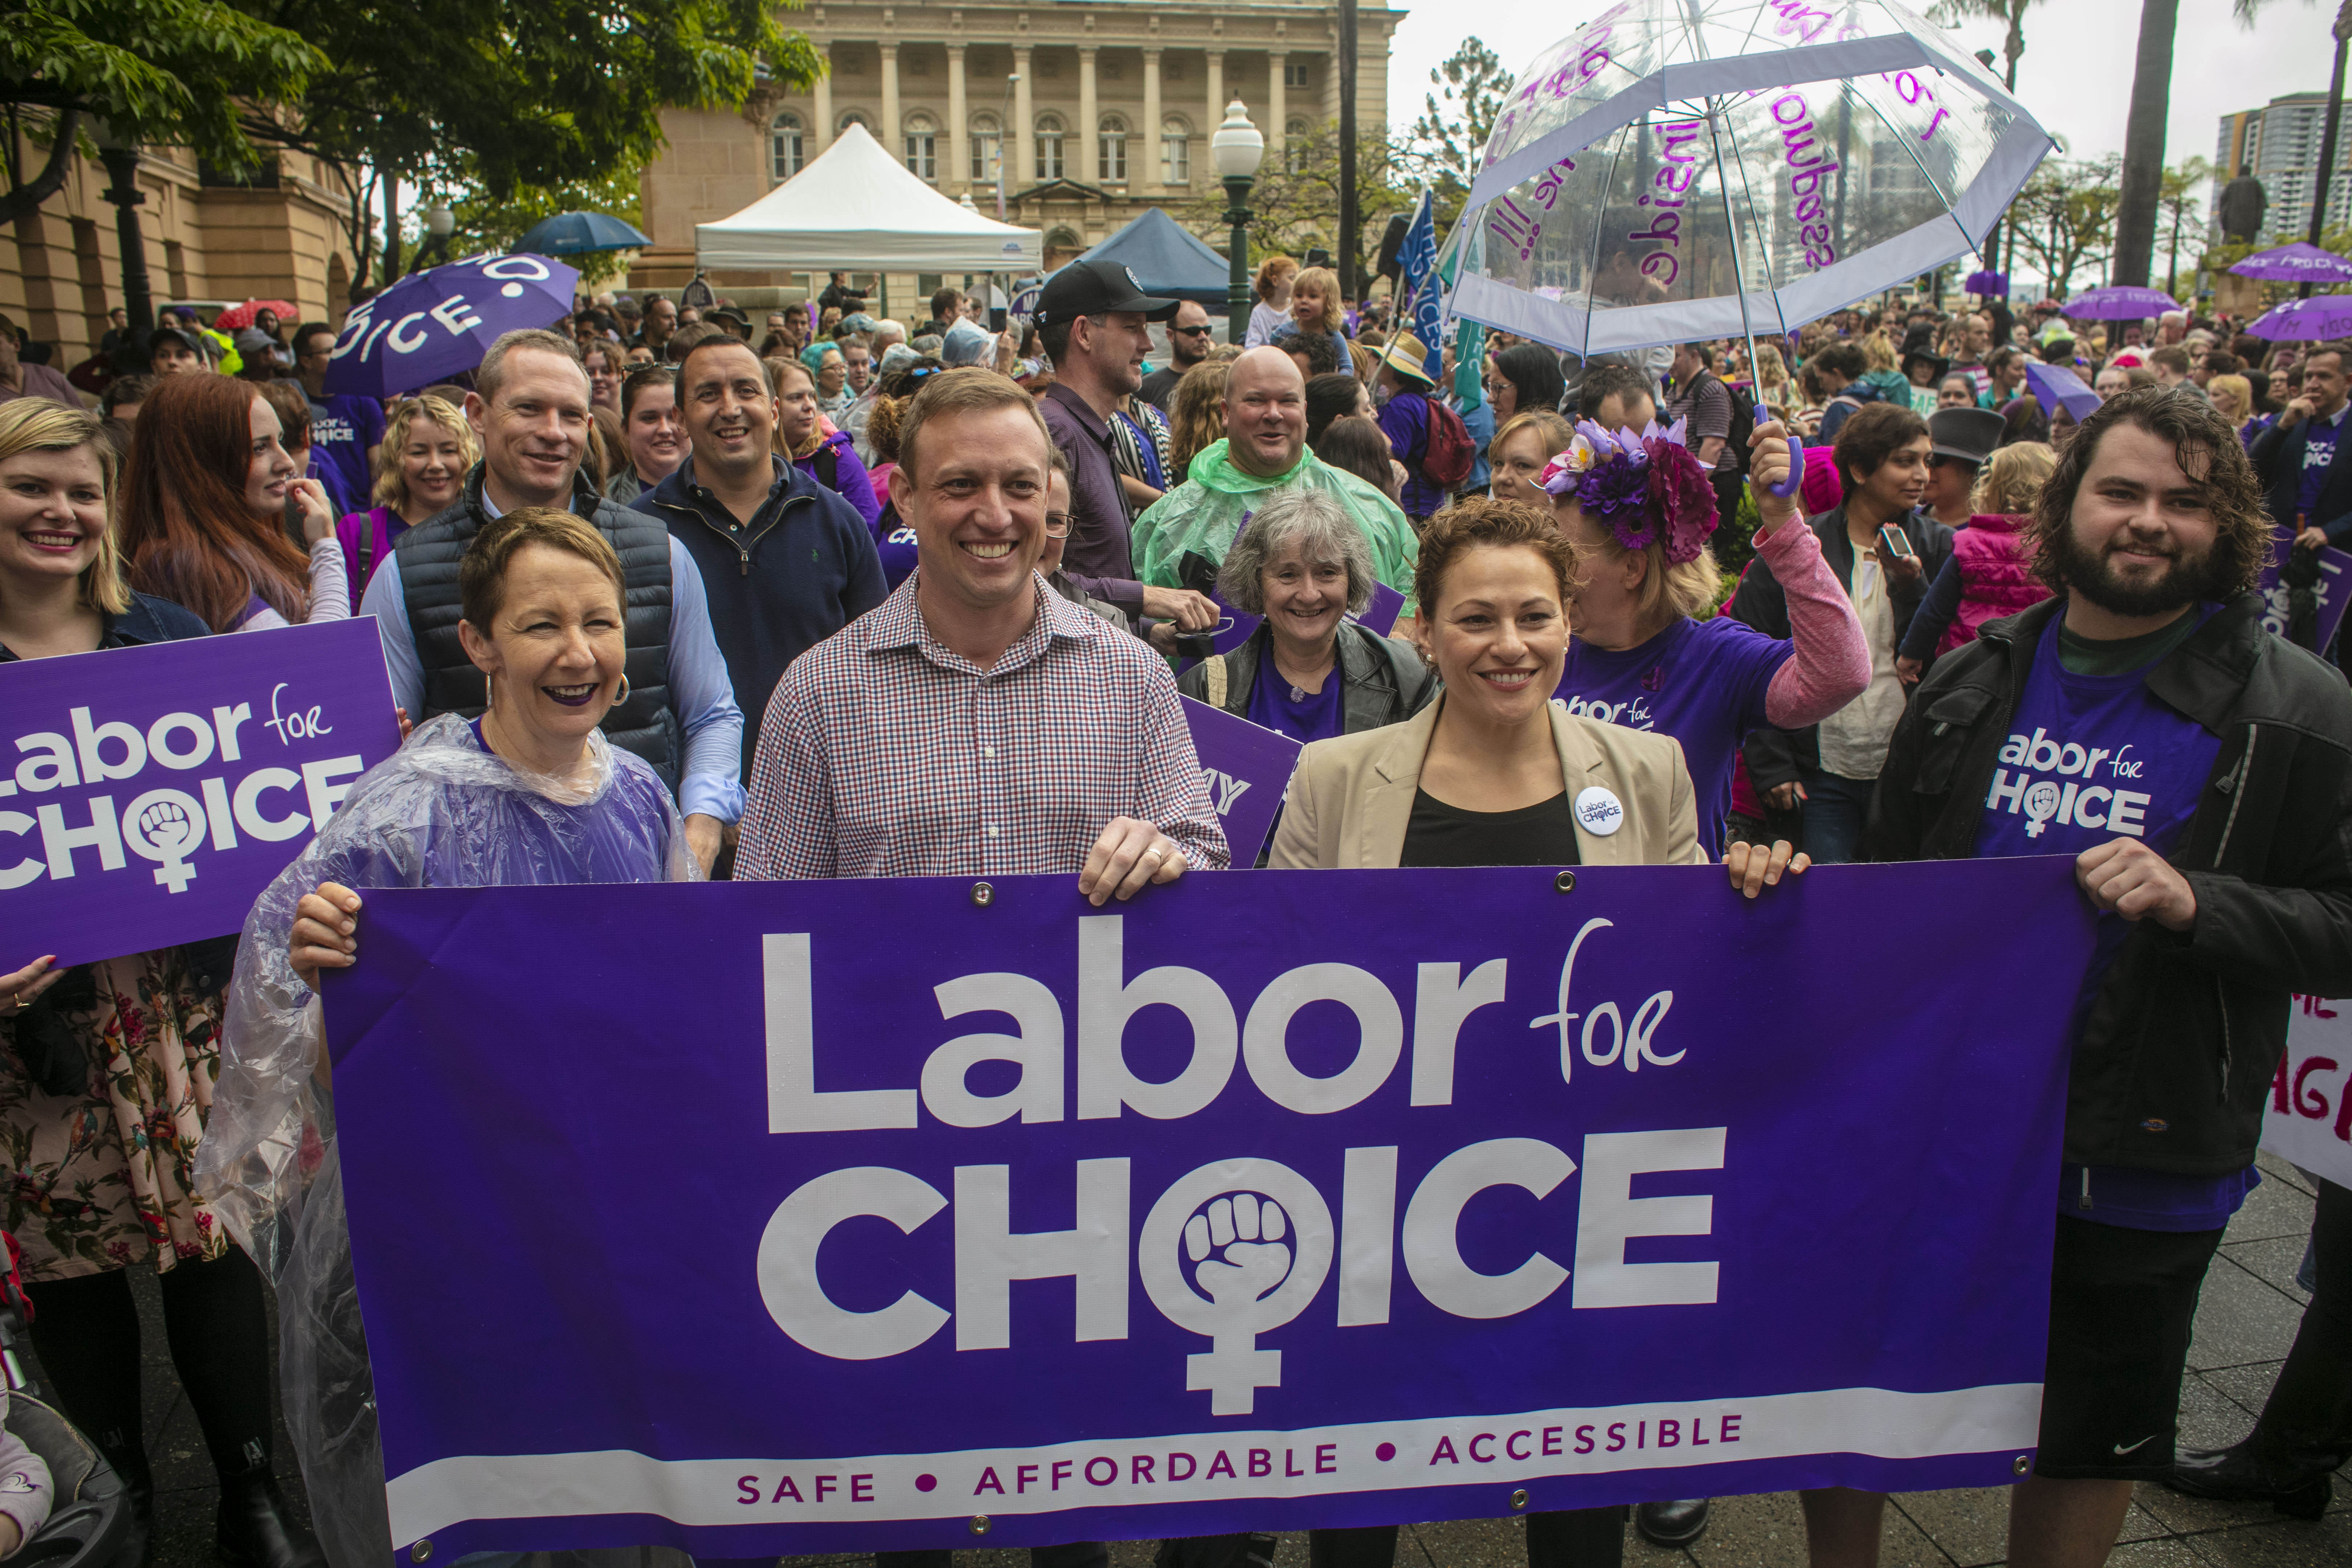 Queensland Health Minister Steven Miles (second left) and Deputy Premier Jackie Trad (third left) attend the March together for Choice rally ahead of proposed changes to Queensland's abortion laws in Brisbane, Australia, on Oct. 14, 2018.